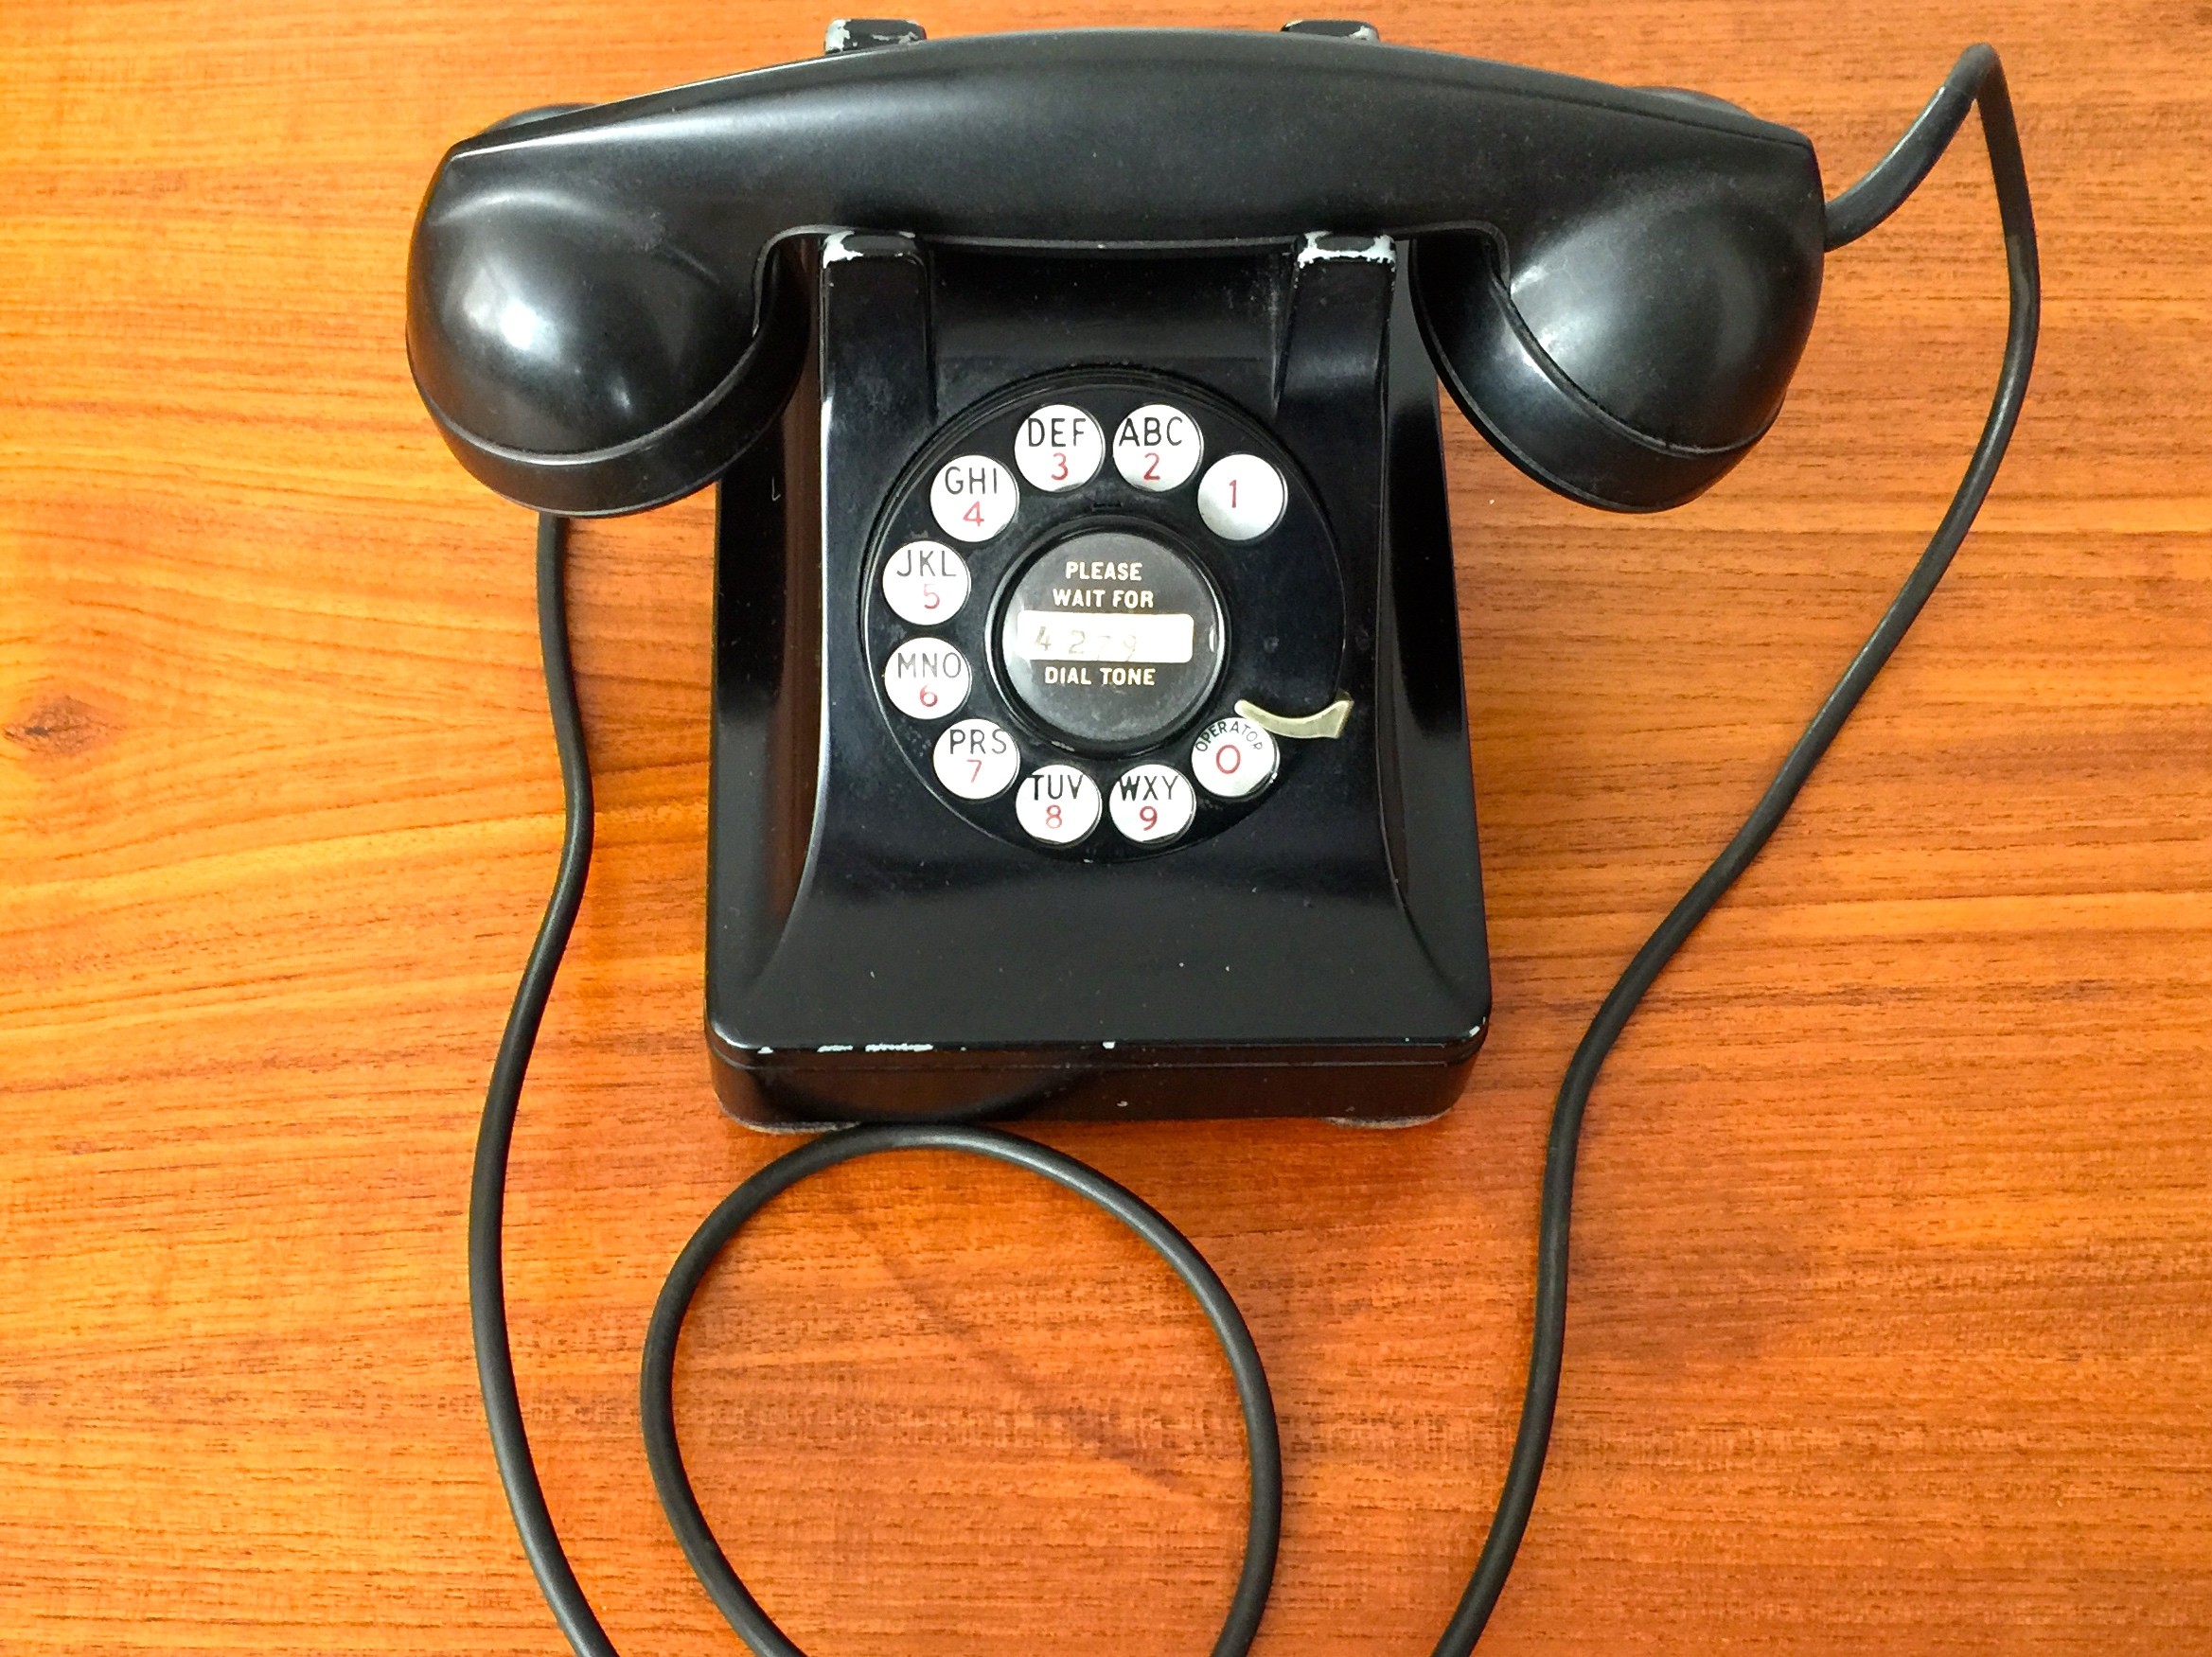 Bell System Western Electric Model 302 dial telephone, ca. 1936